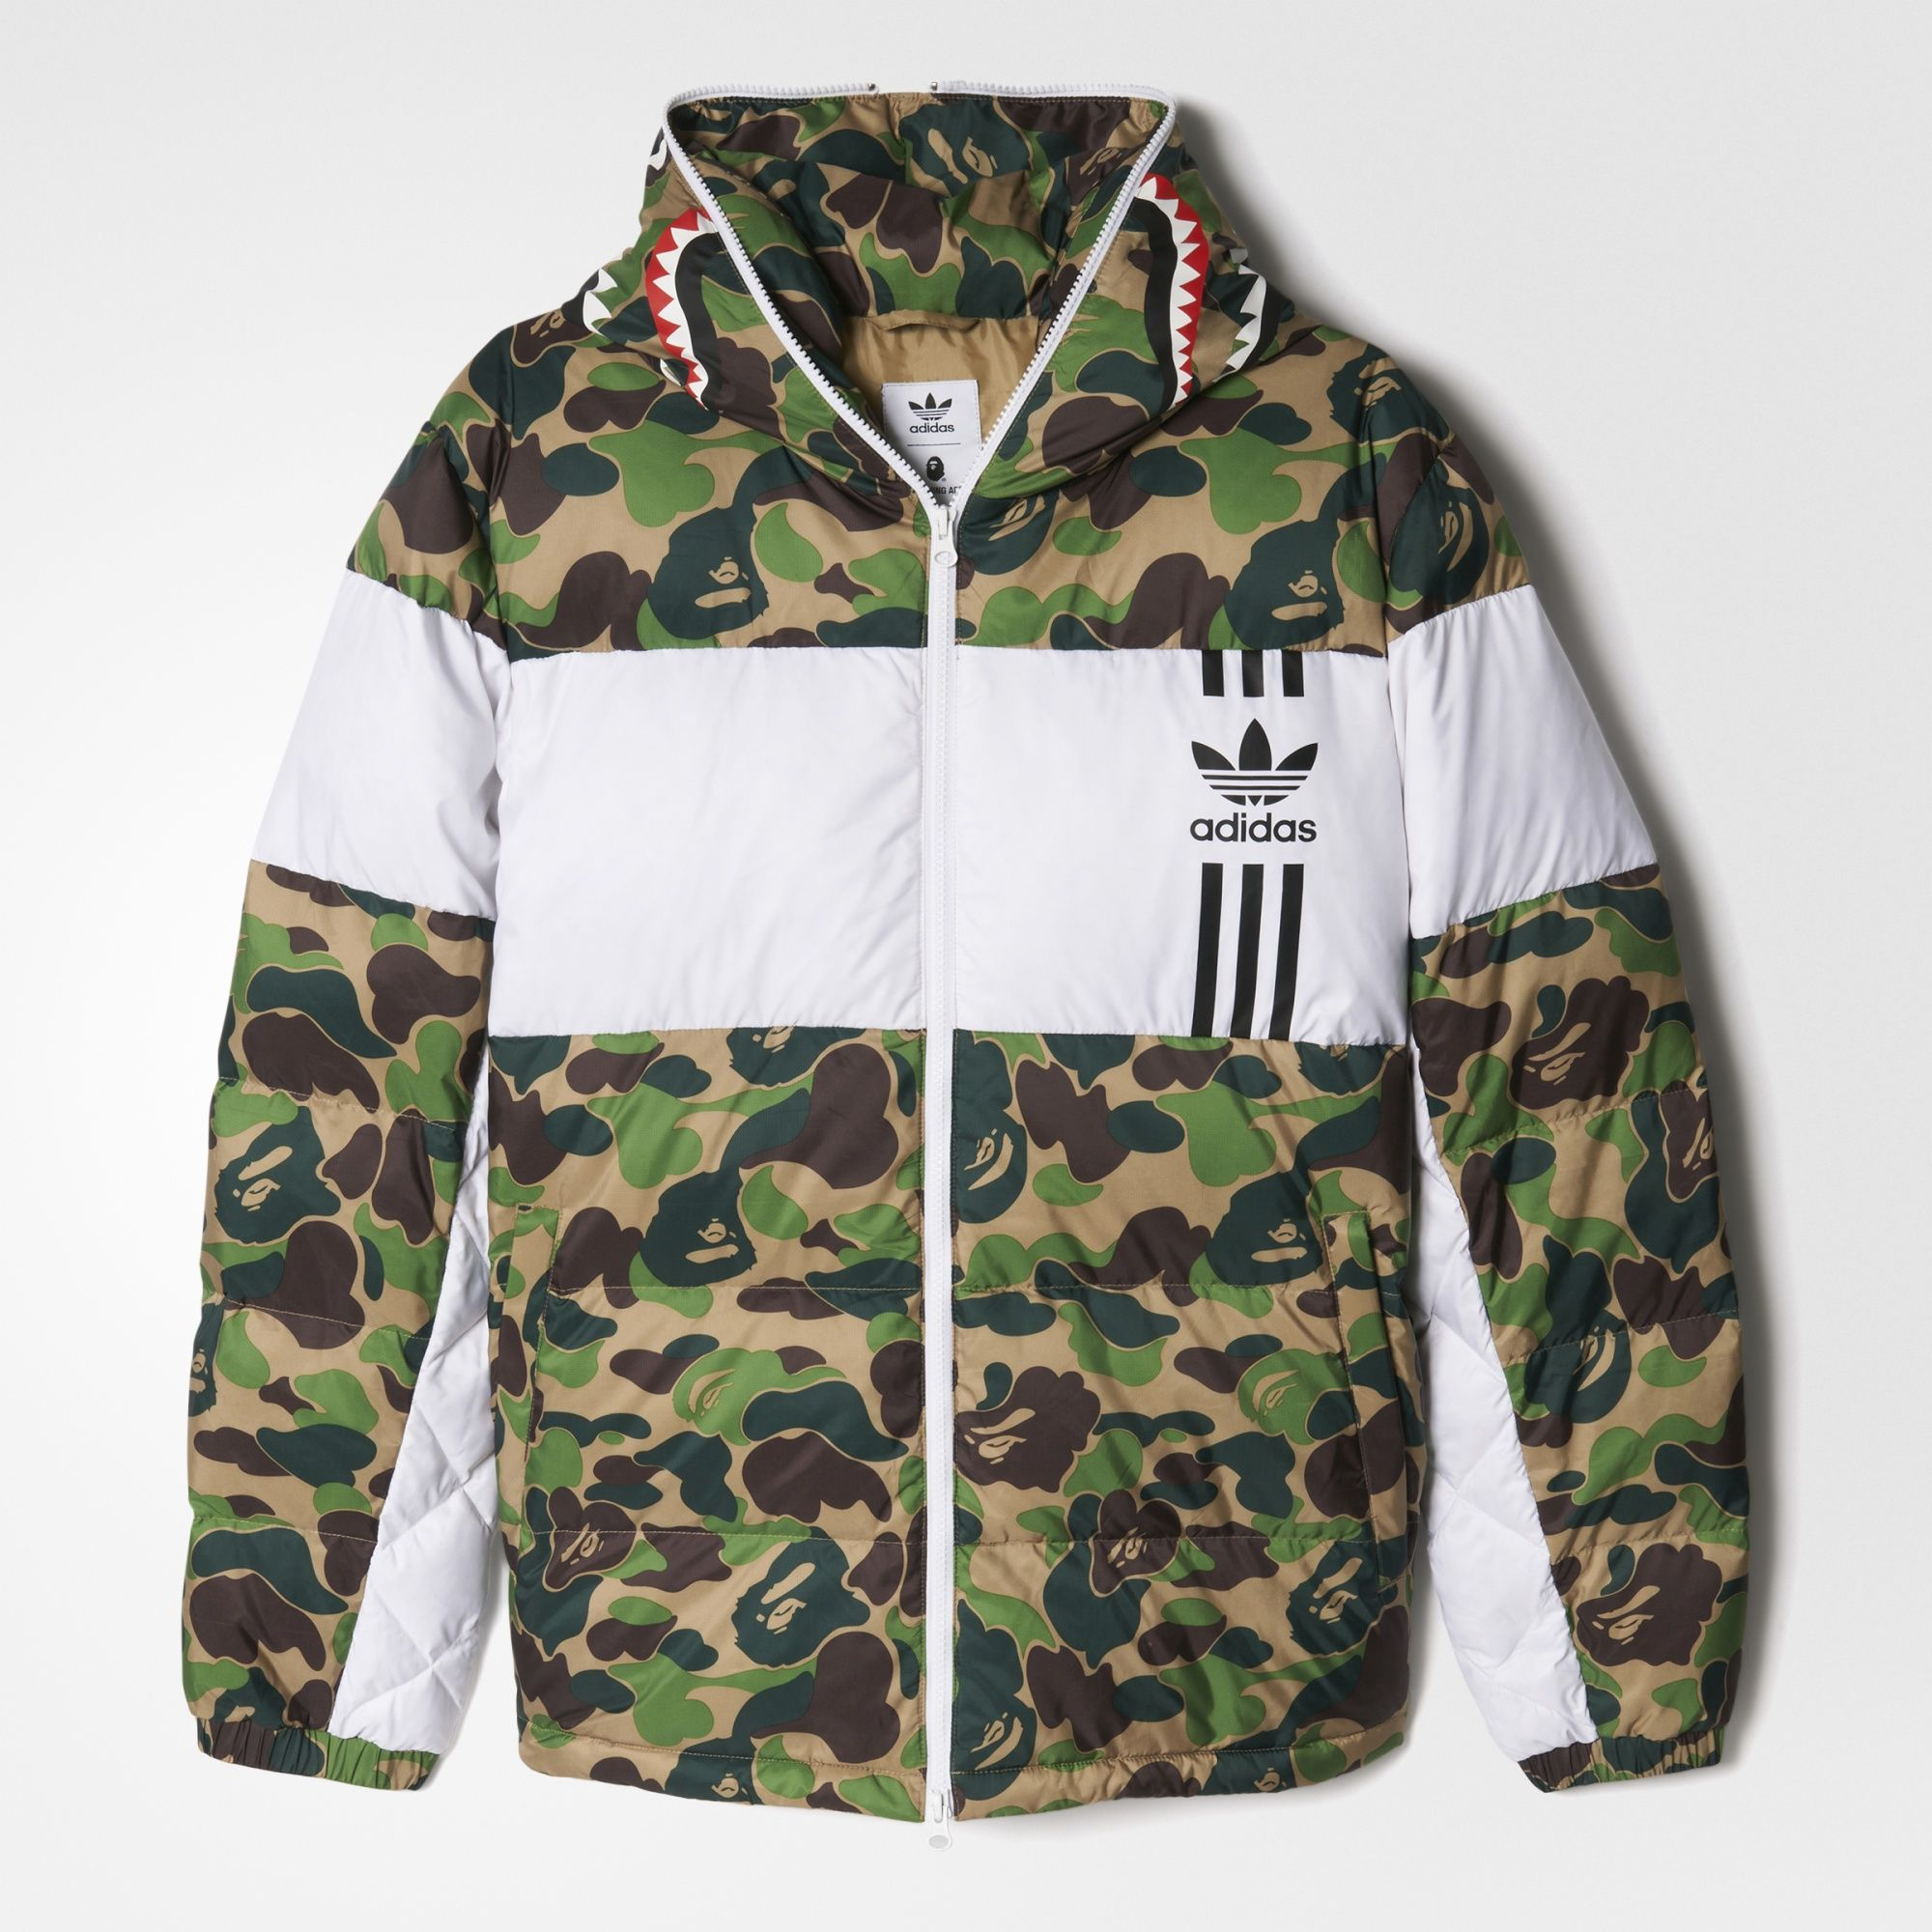 adidas id96 down jacket bape shoes and outfits. Black Bedroom Furniture Sets. Home Design Ideas